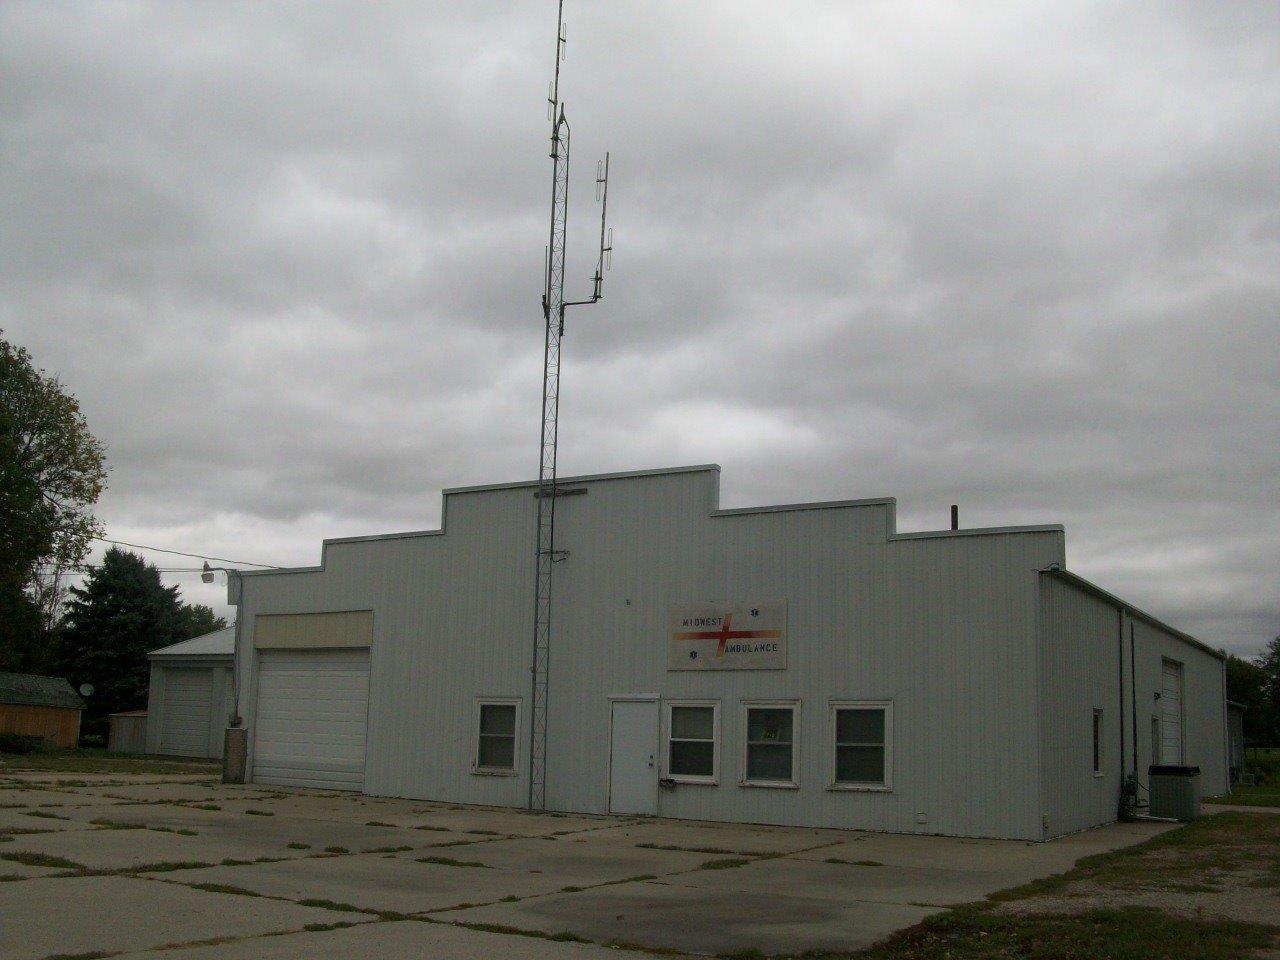 308 Park St, Grinnell, IA 50112